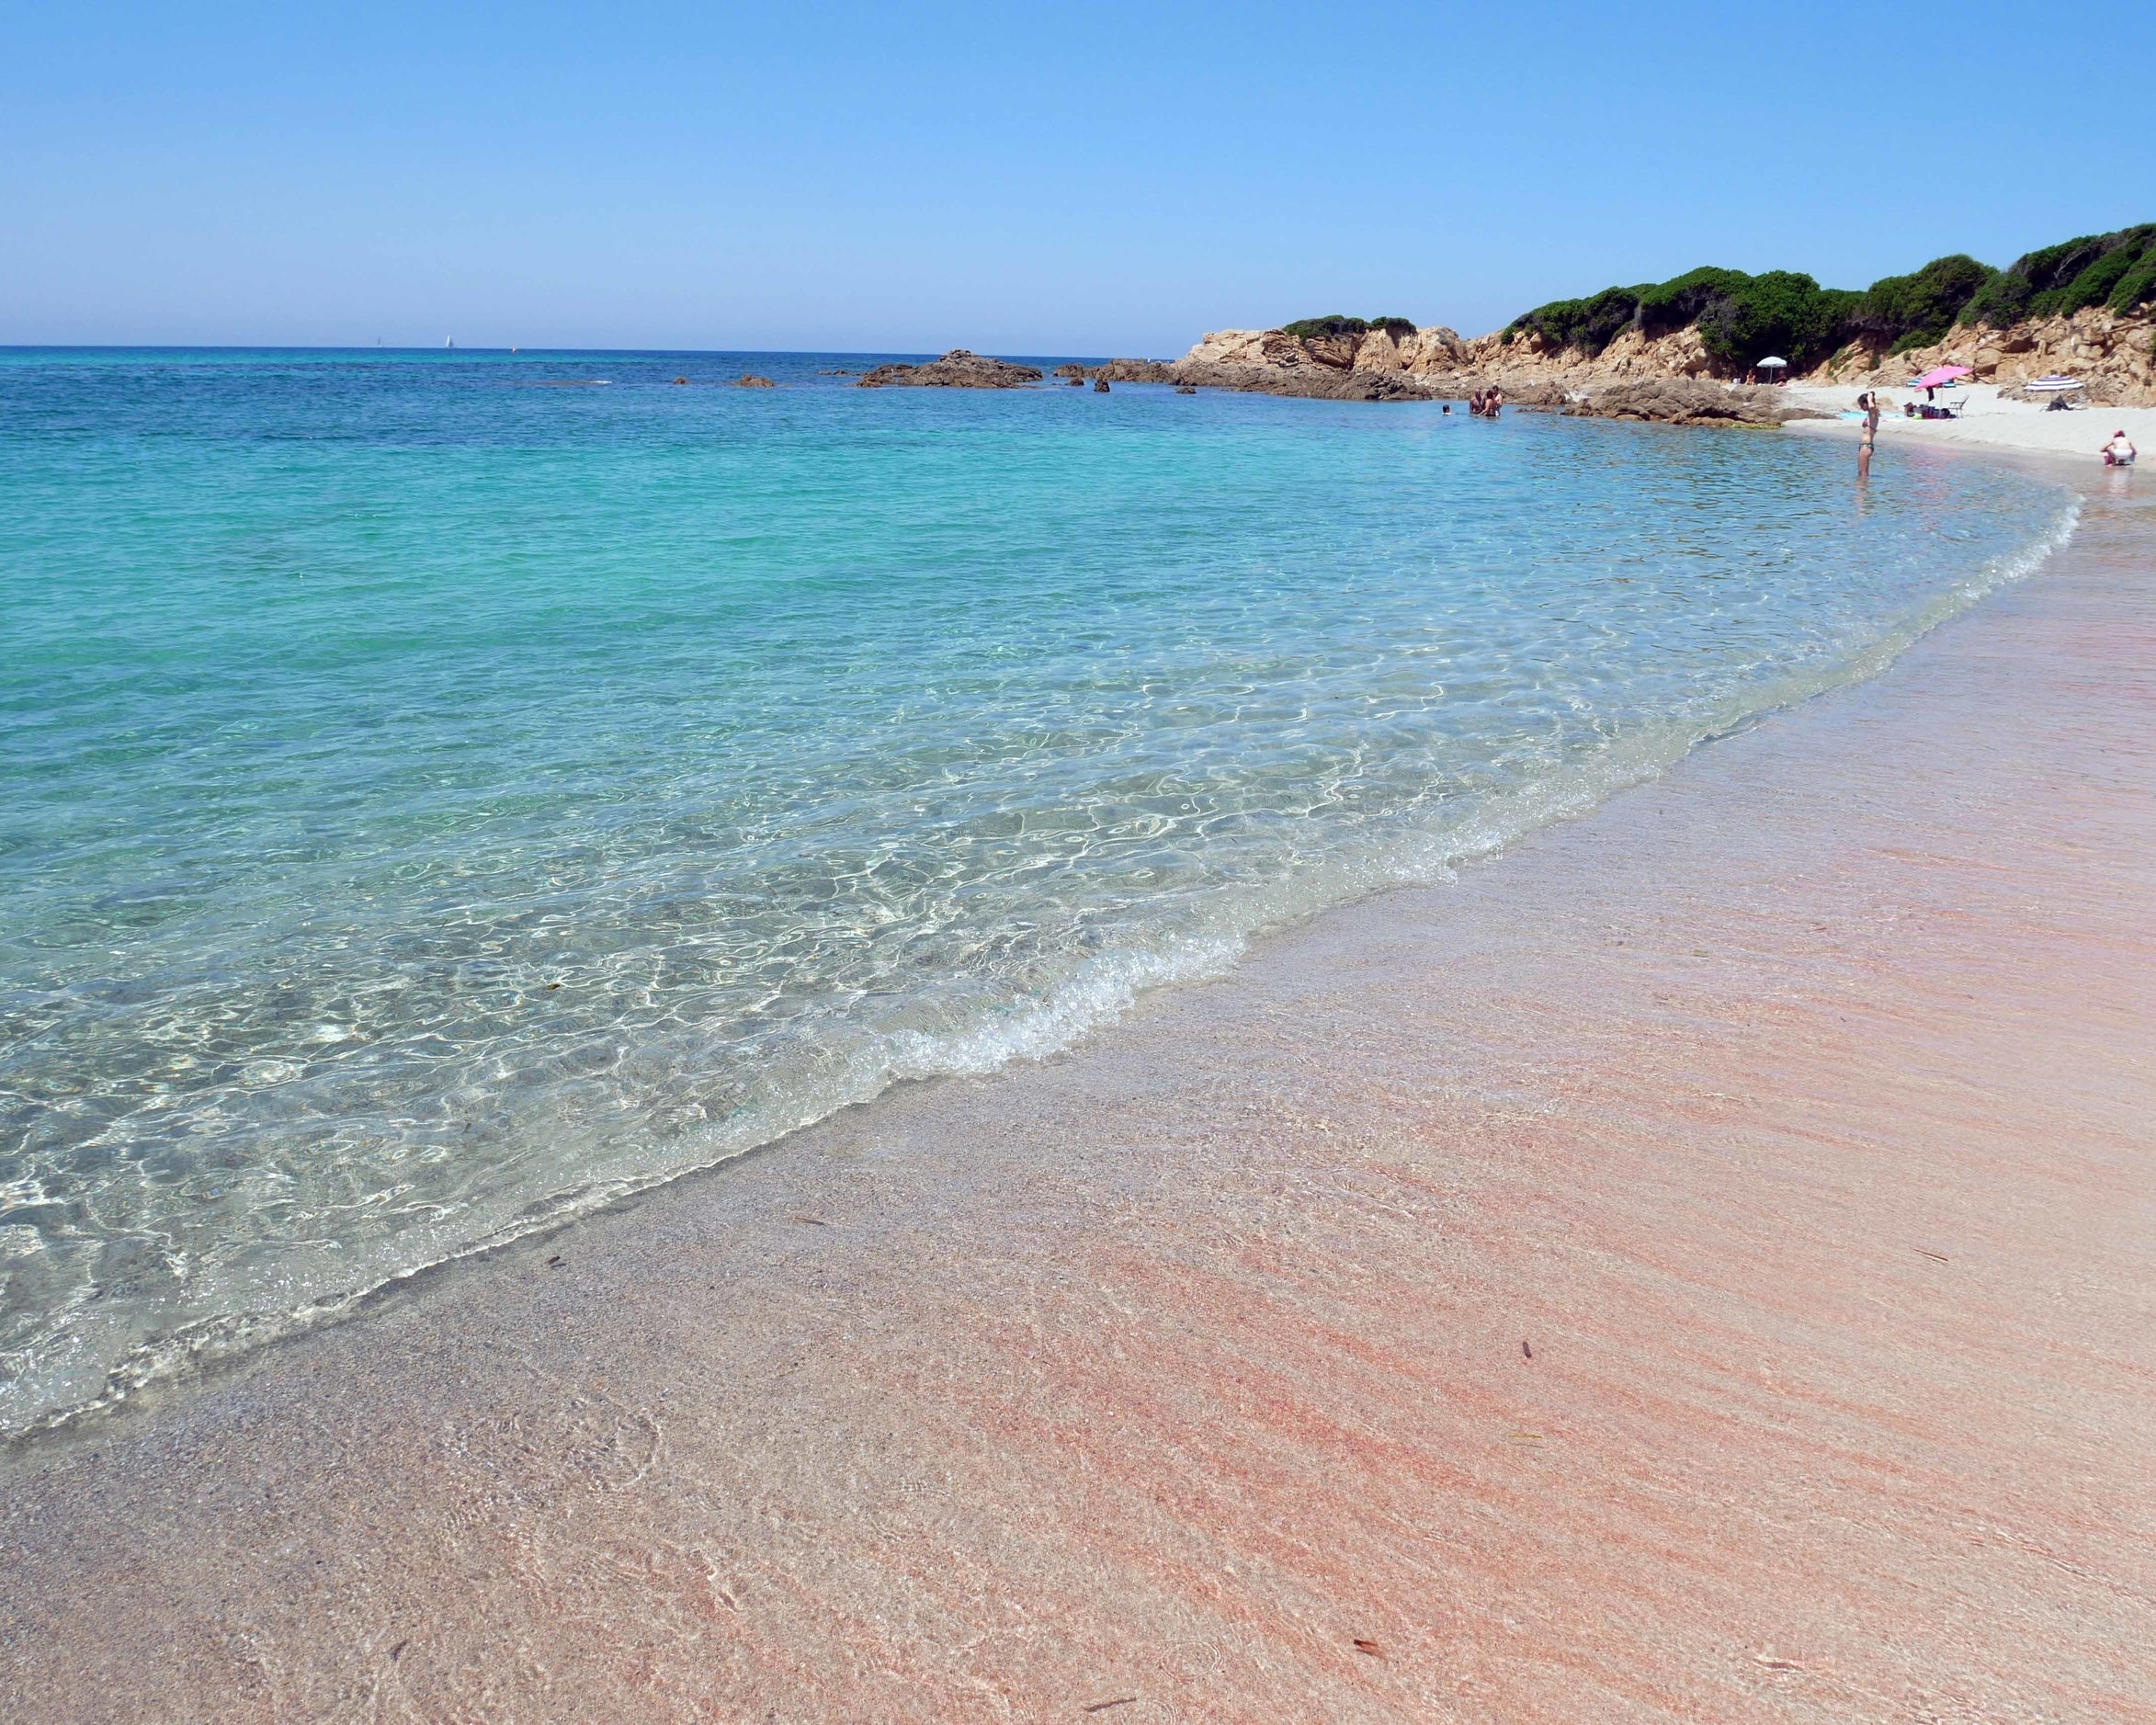 Pink granite from the island's mountains merges with the Corsican sea